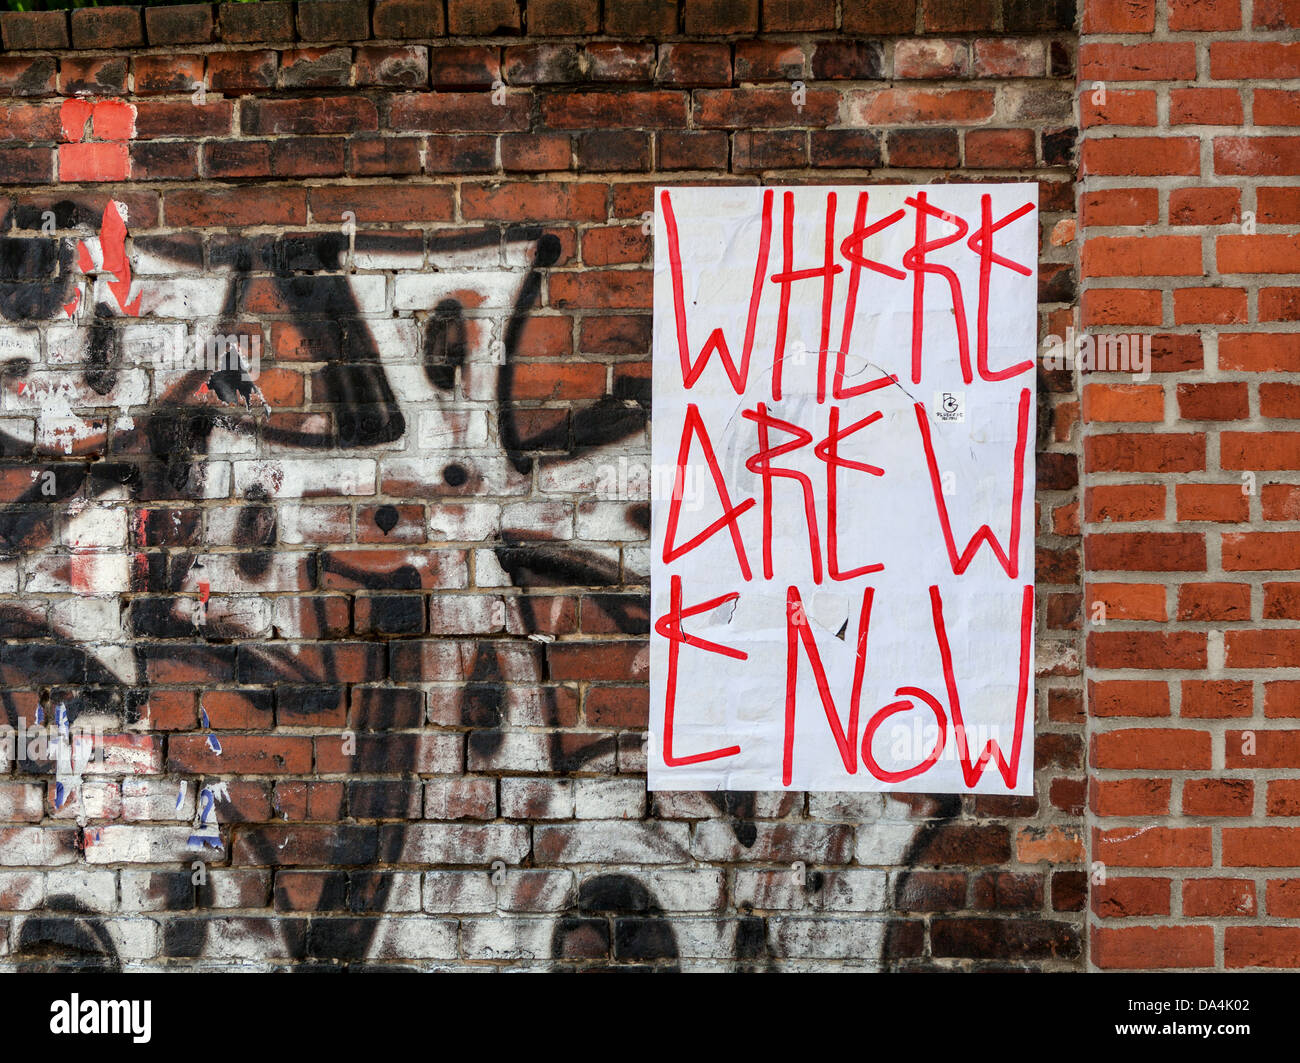 'where are we now' - a poster on a graffiti-covered brick wall, Mitte, Berlin - Stock Image